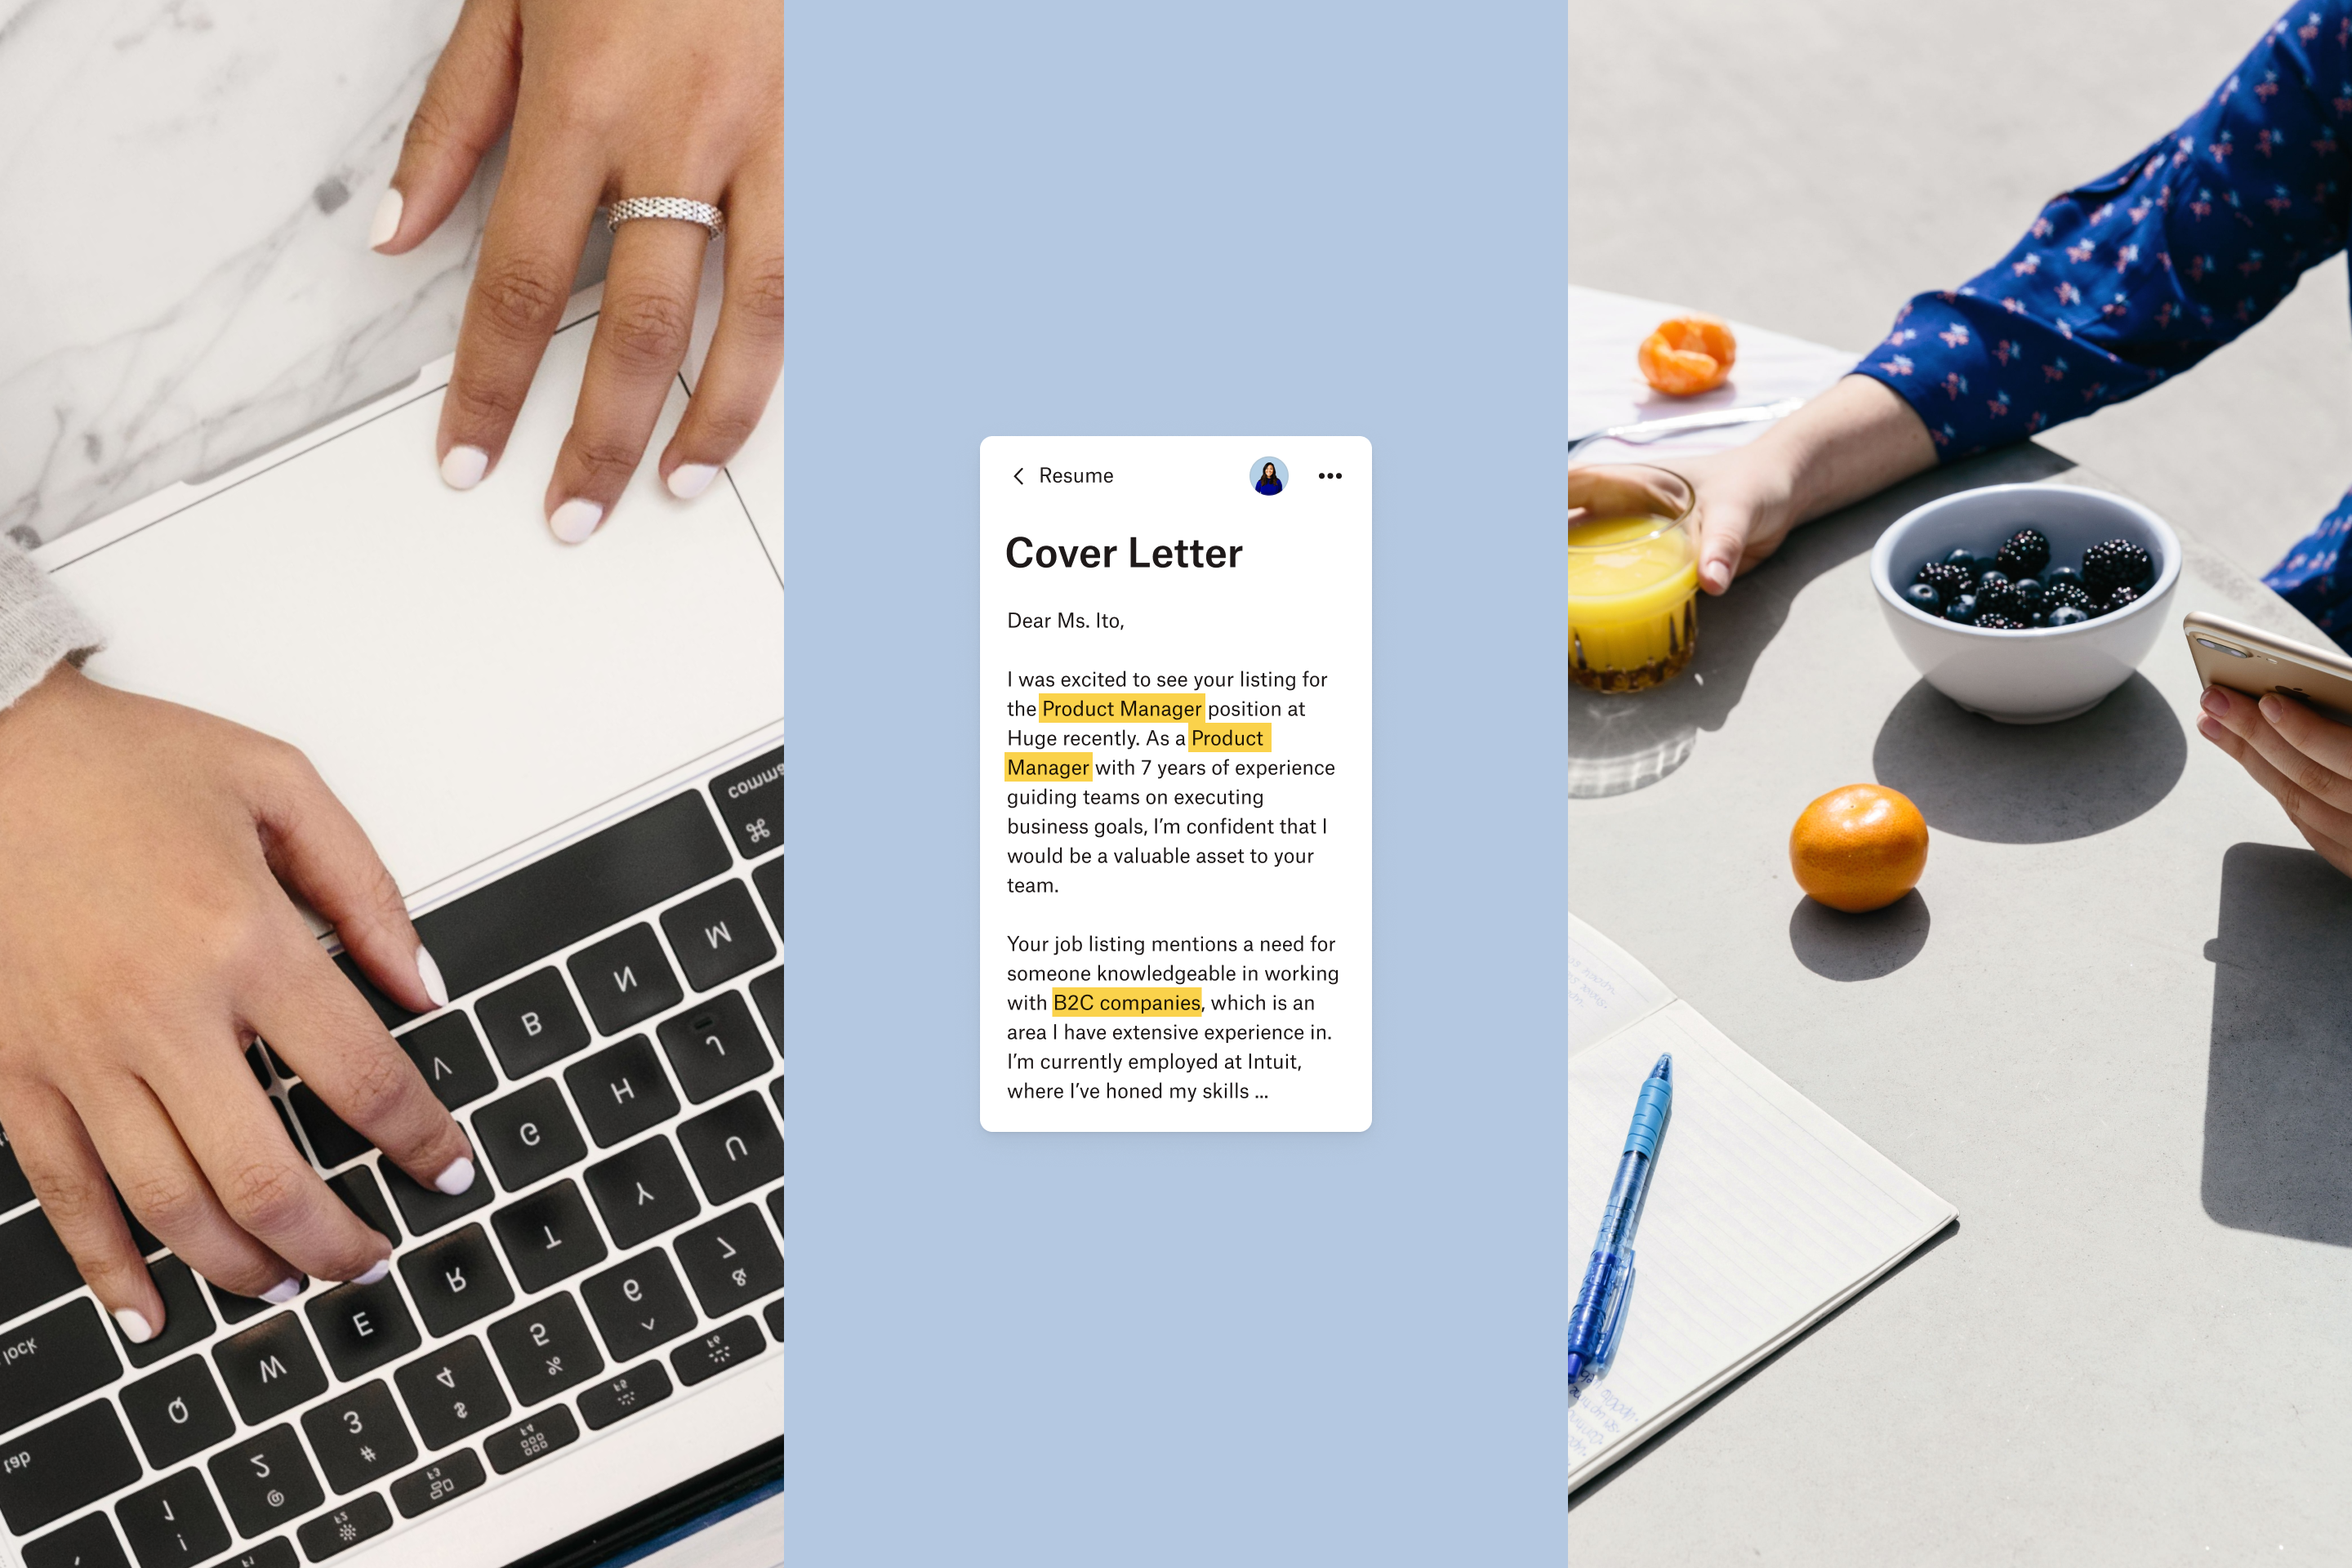 An example cover letter with highlighted keywords